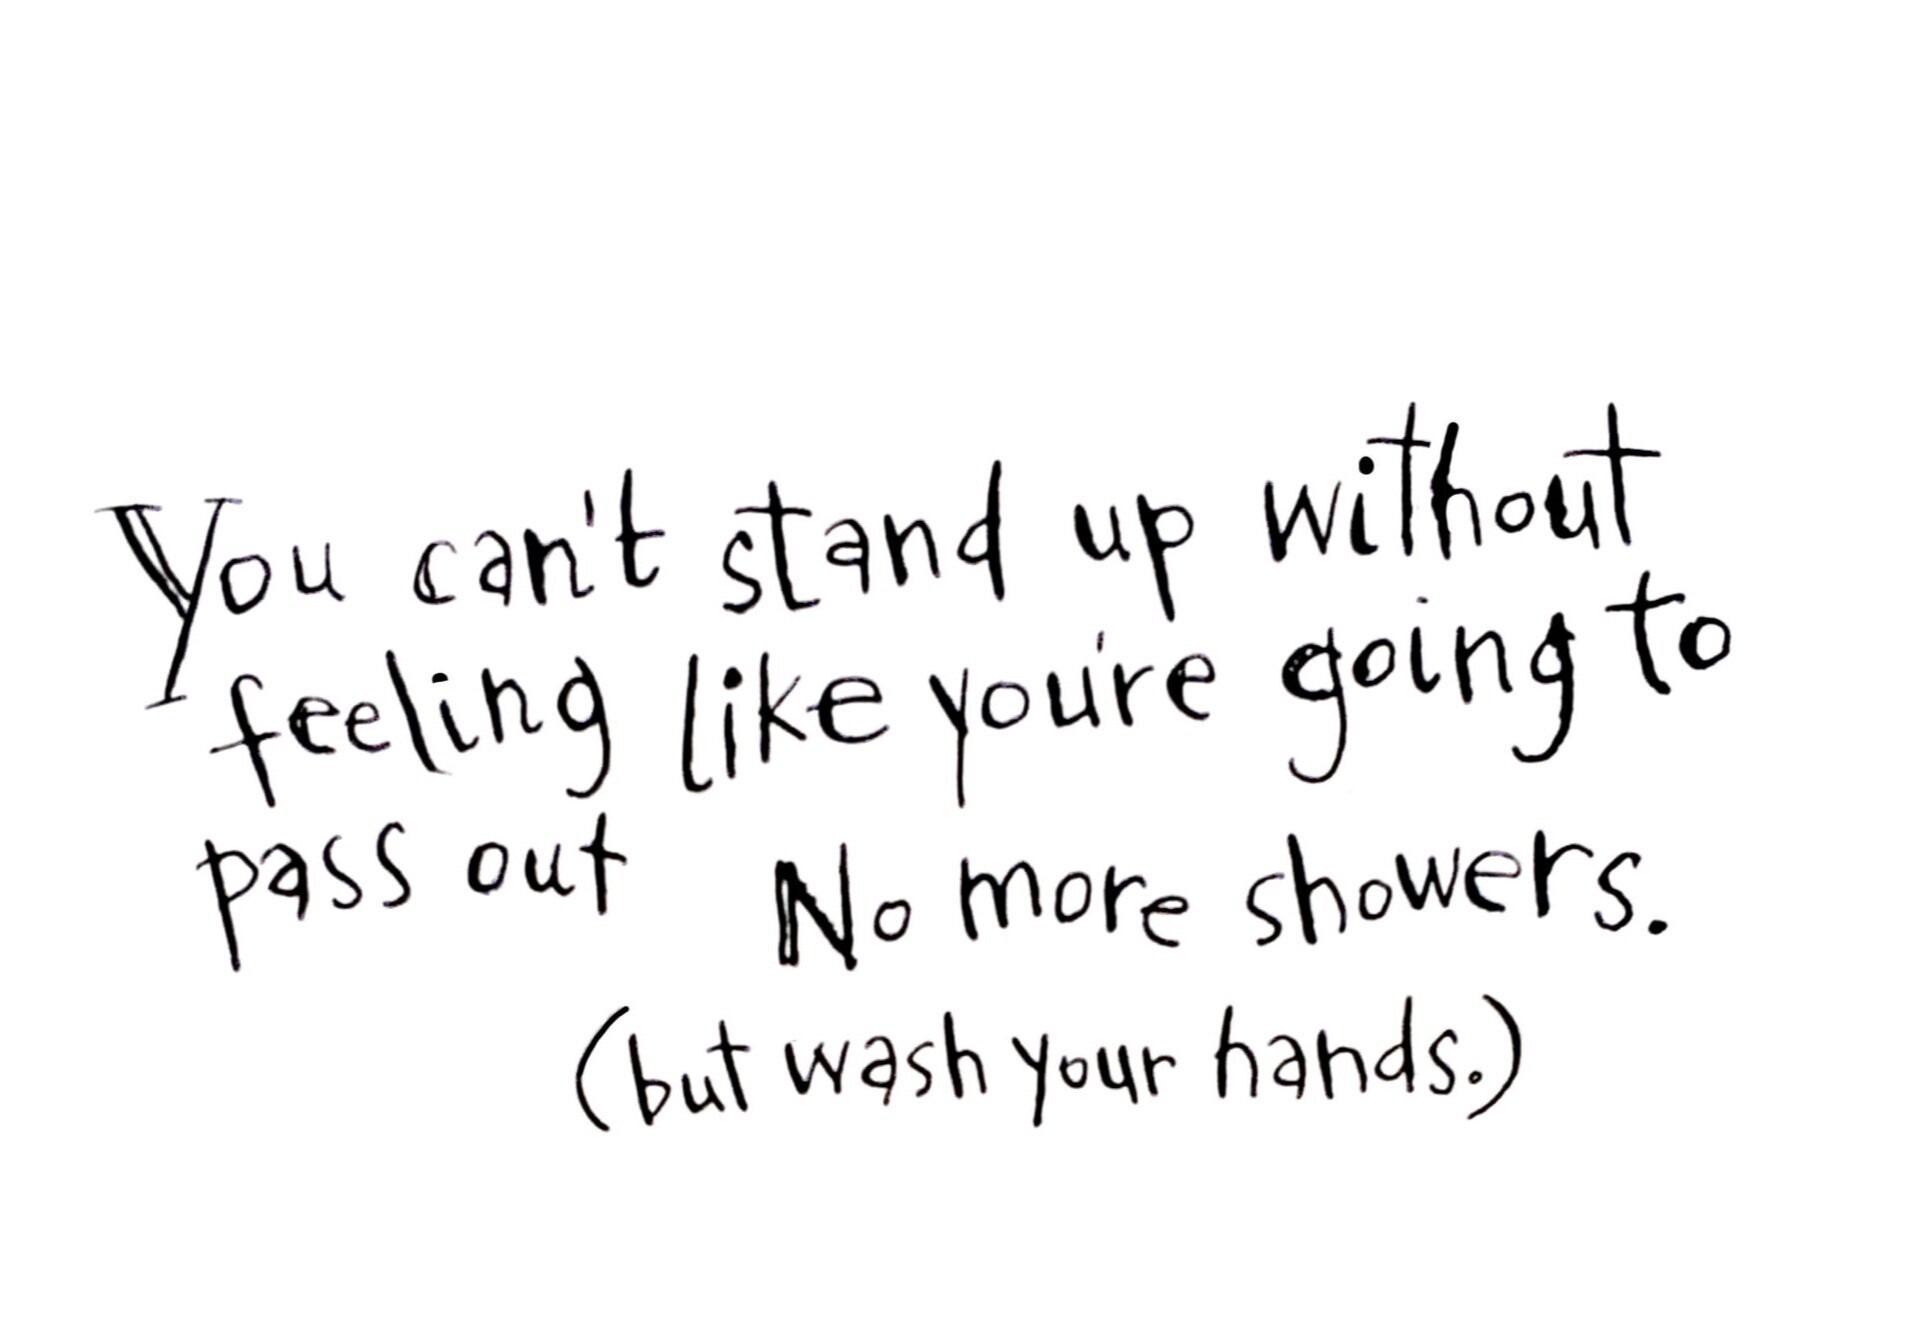 You can't stand up without feeling like you're going to pass out. No more showers. (but wash your hands).